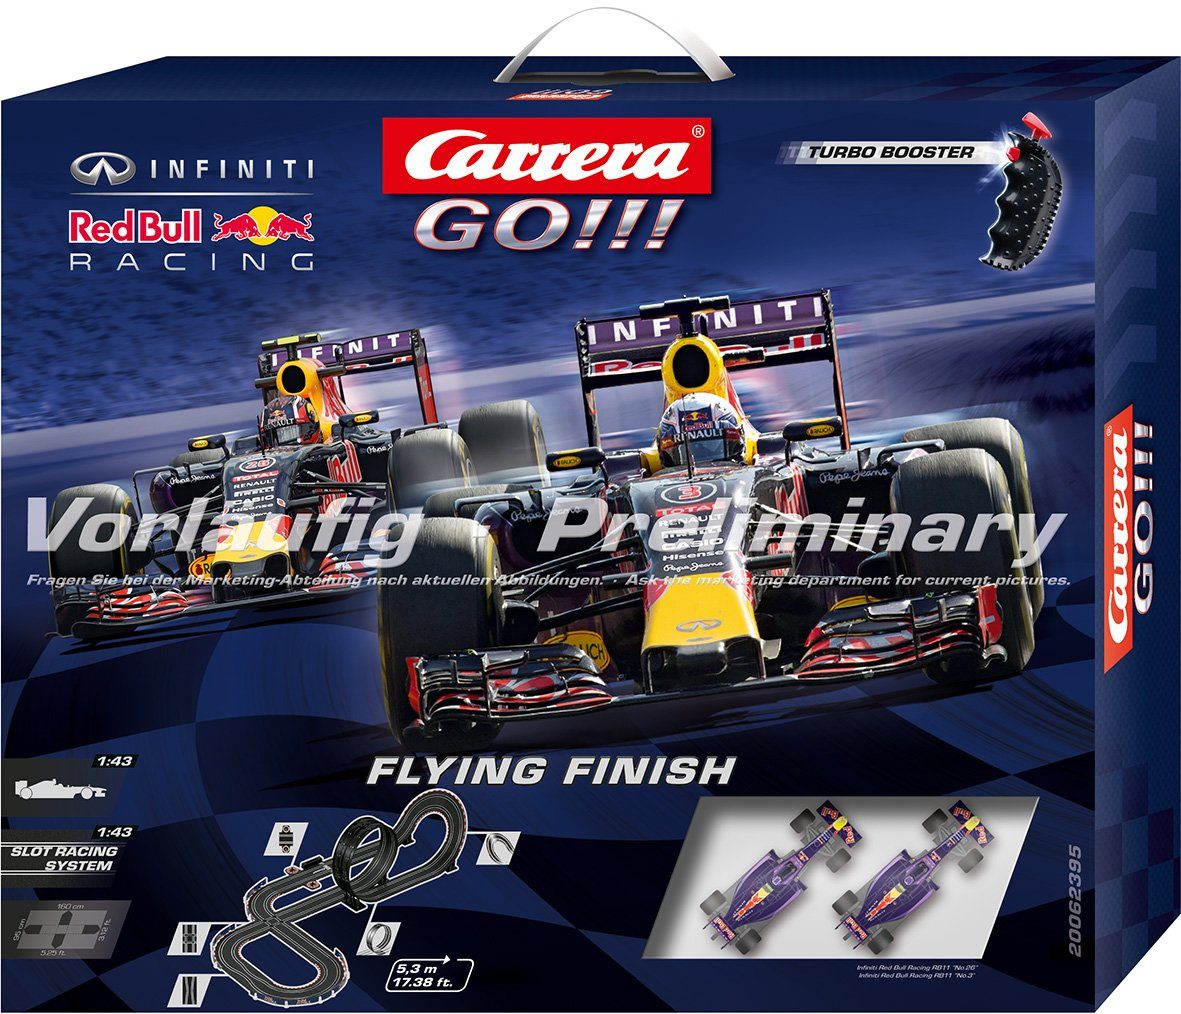 Carrera Autorennbahn, »Carrera® GO!!! Flying Finish«